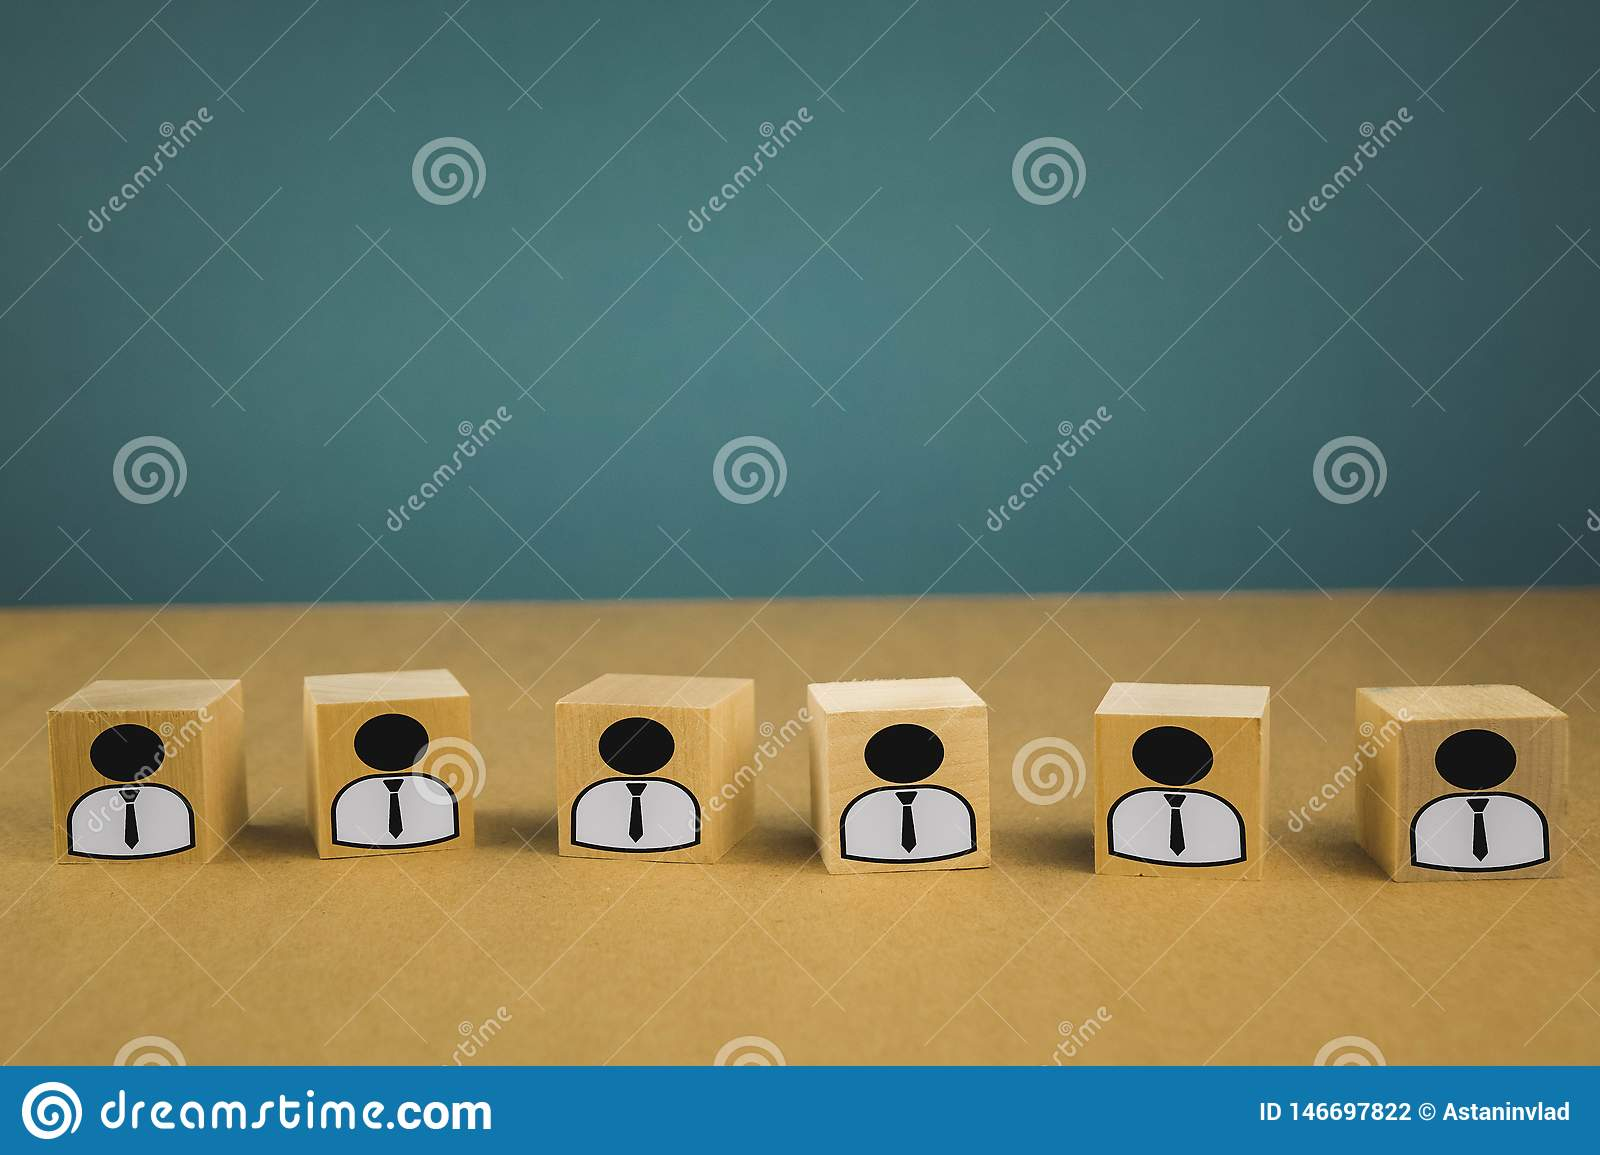 wooden cubes standing in a row, meaning wage workers standing in one line, abstraction on a blue background